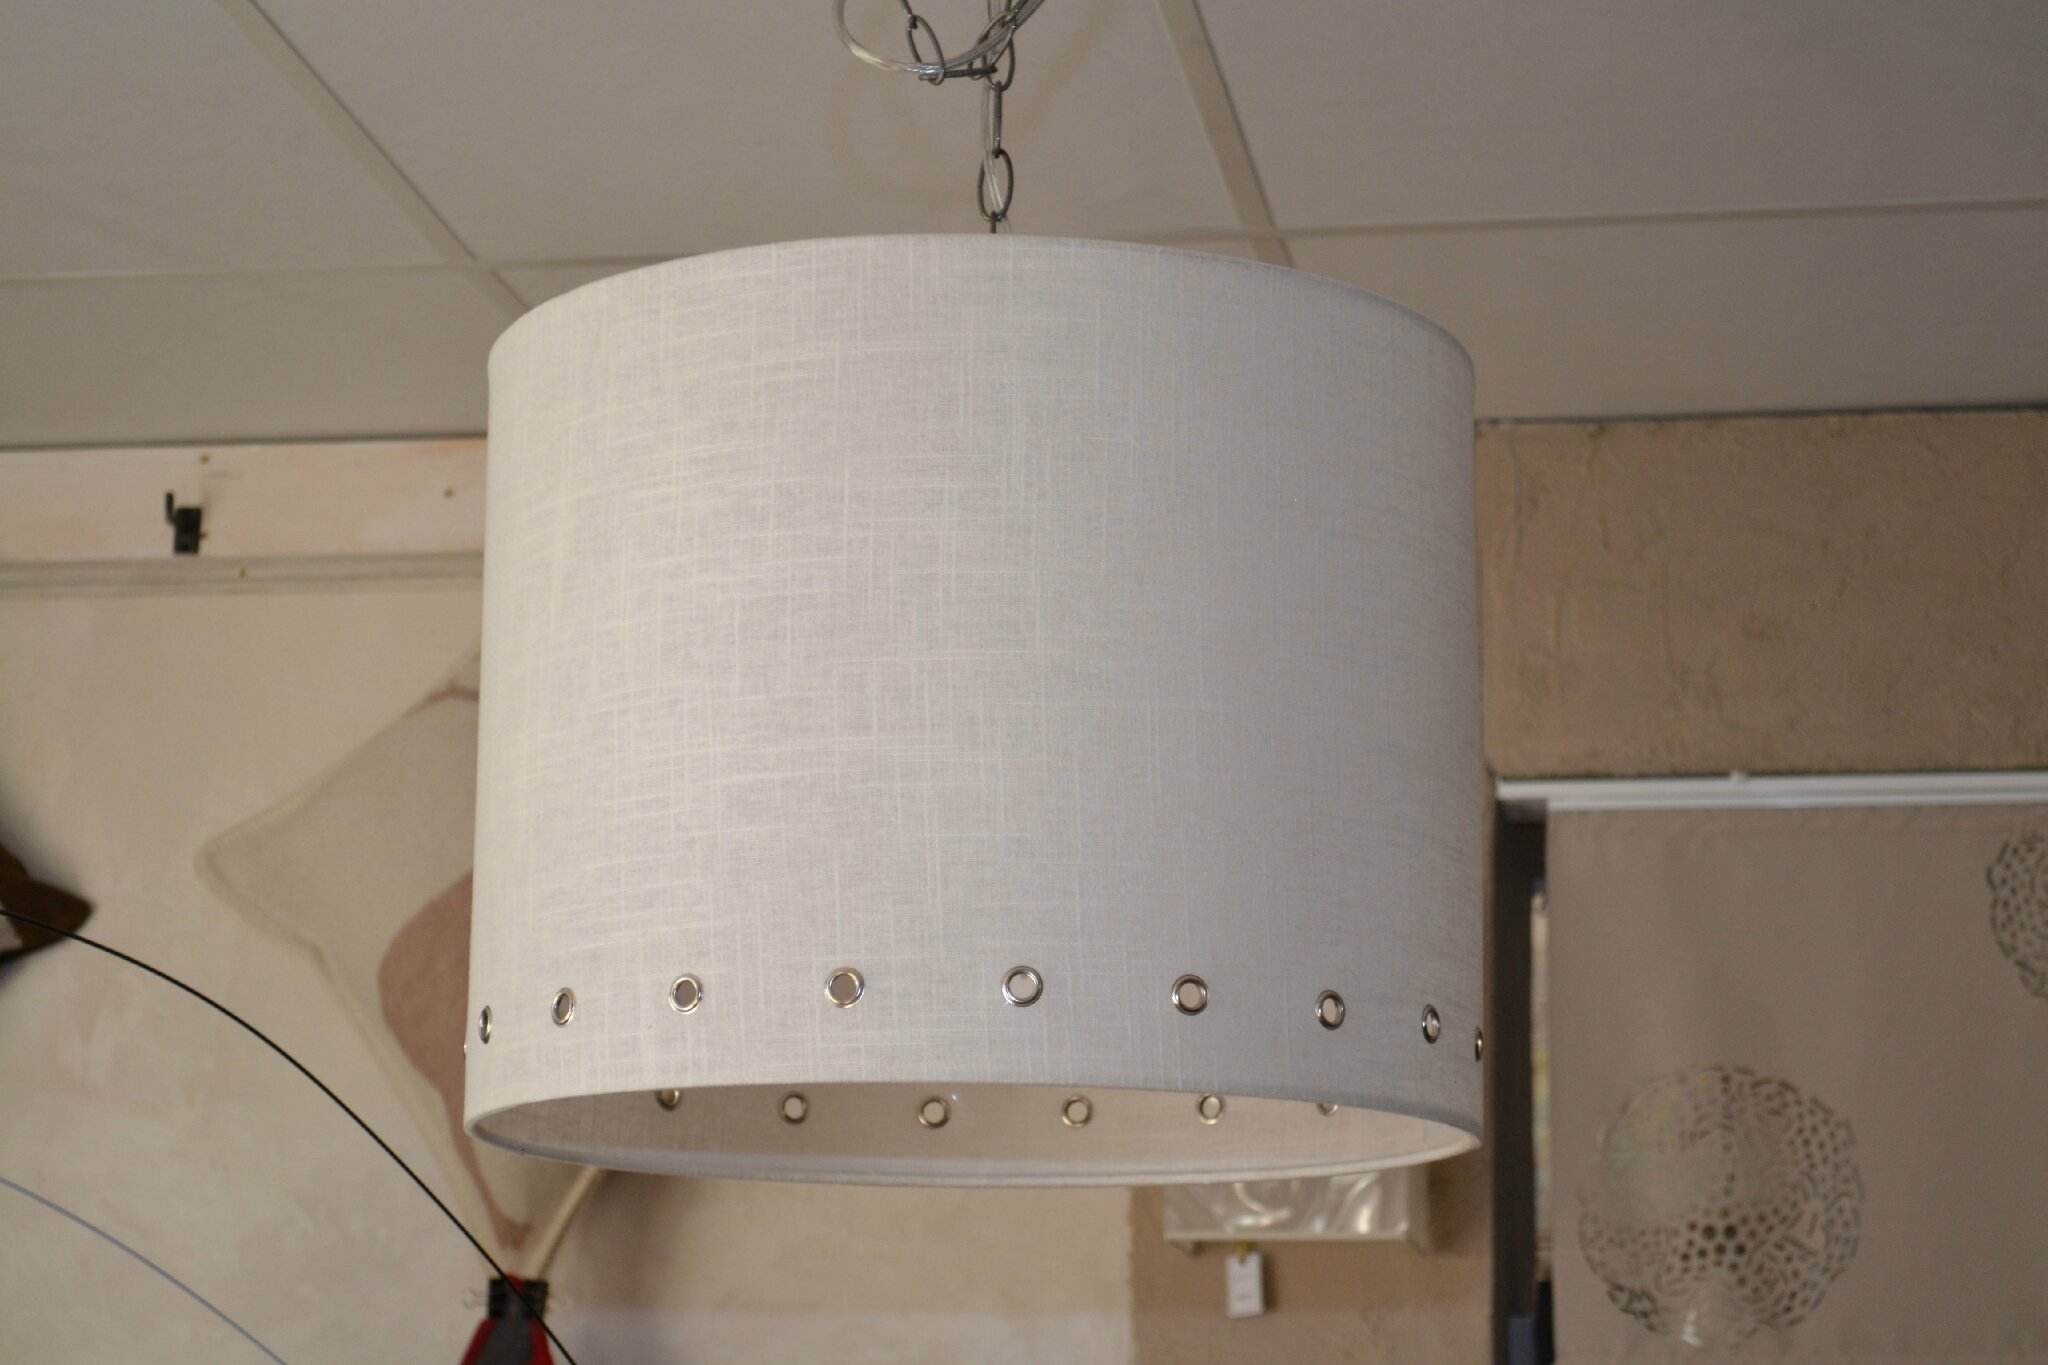 Affordable Les Luminaires With Rideau Style Industriel